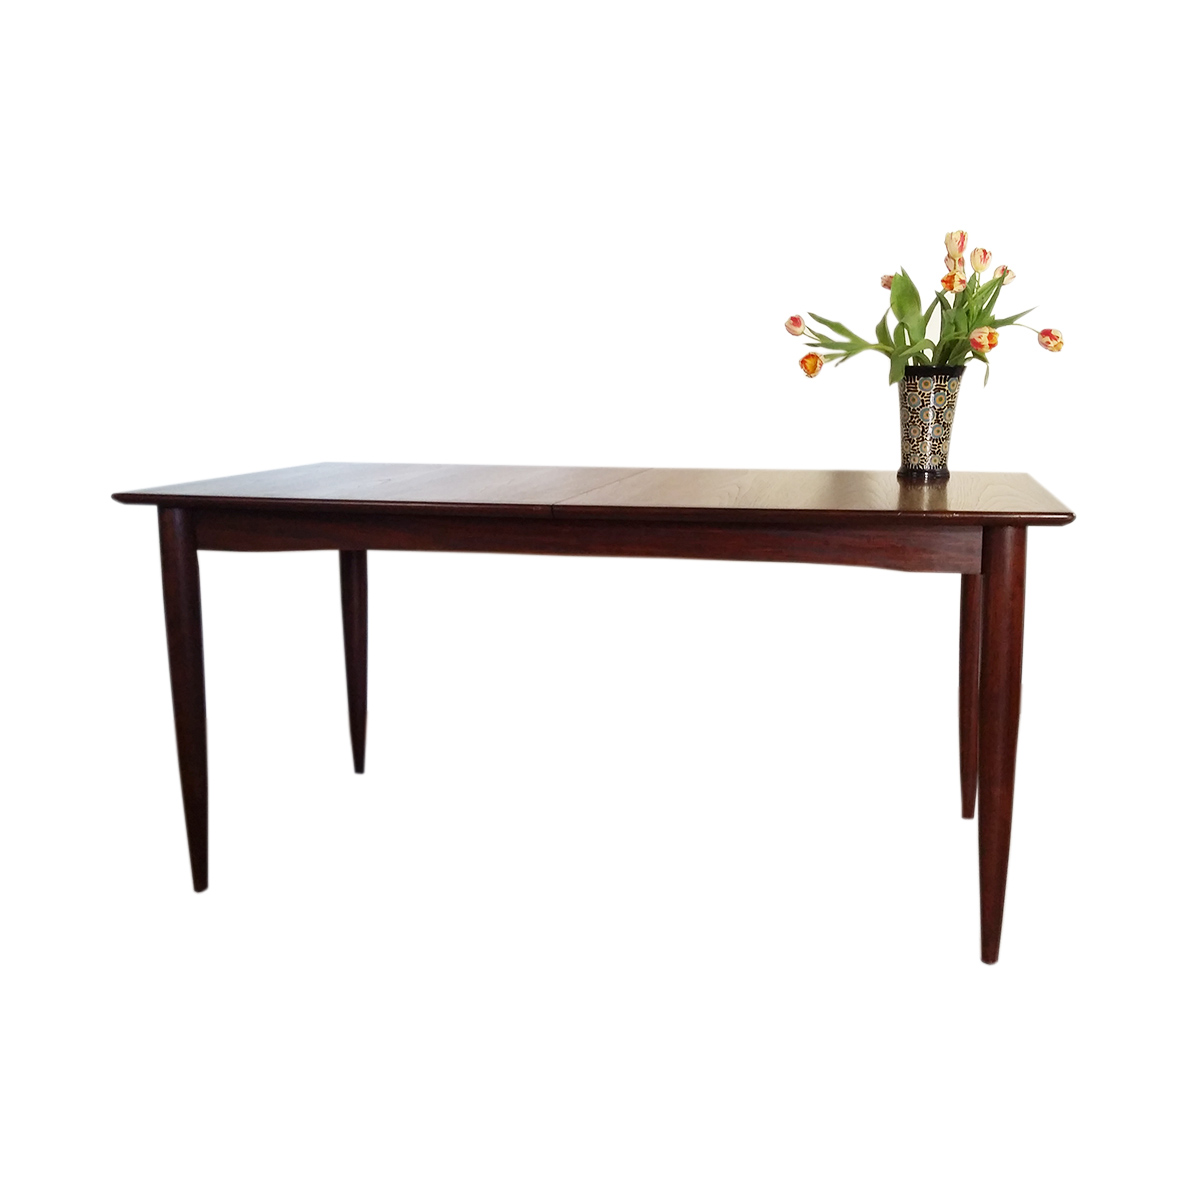 teak-teck-dining-table